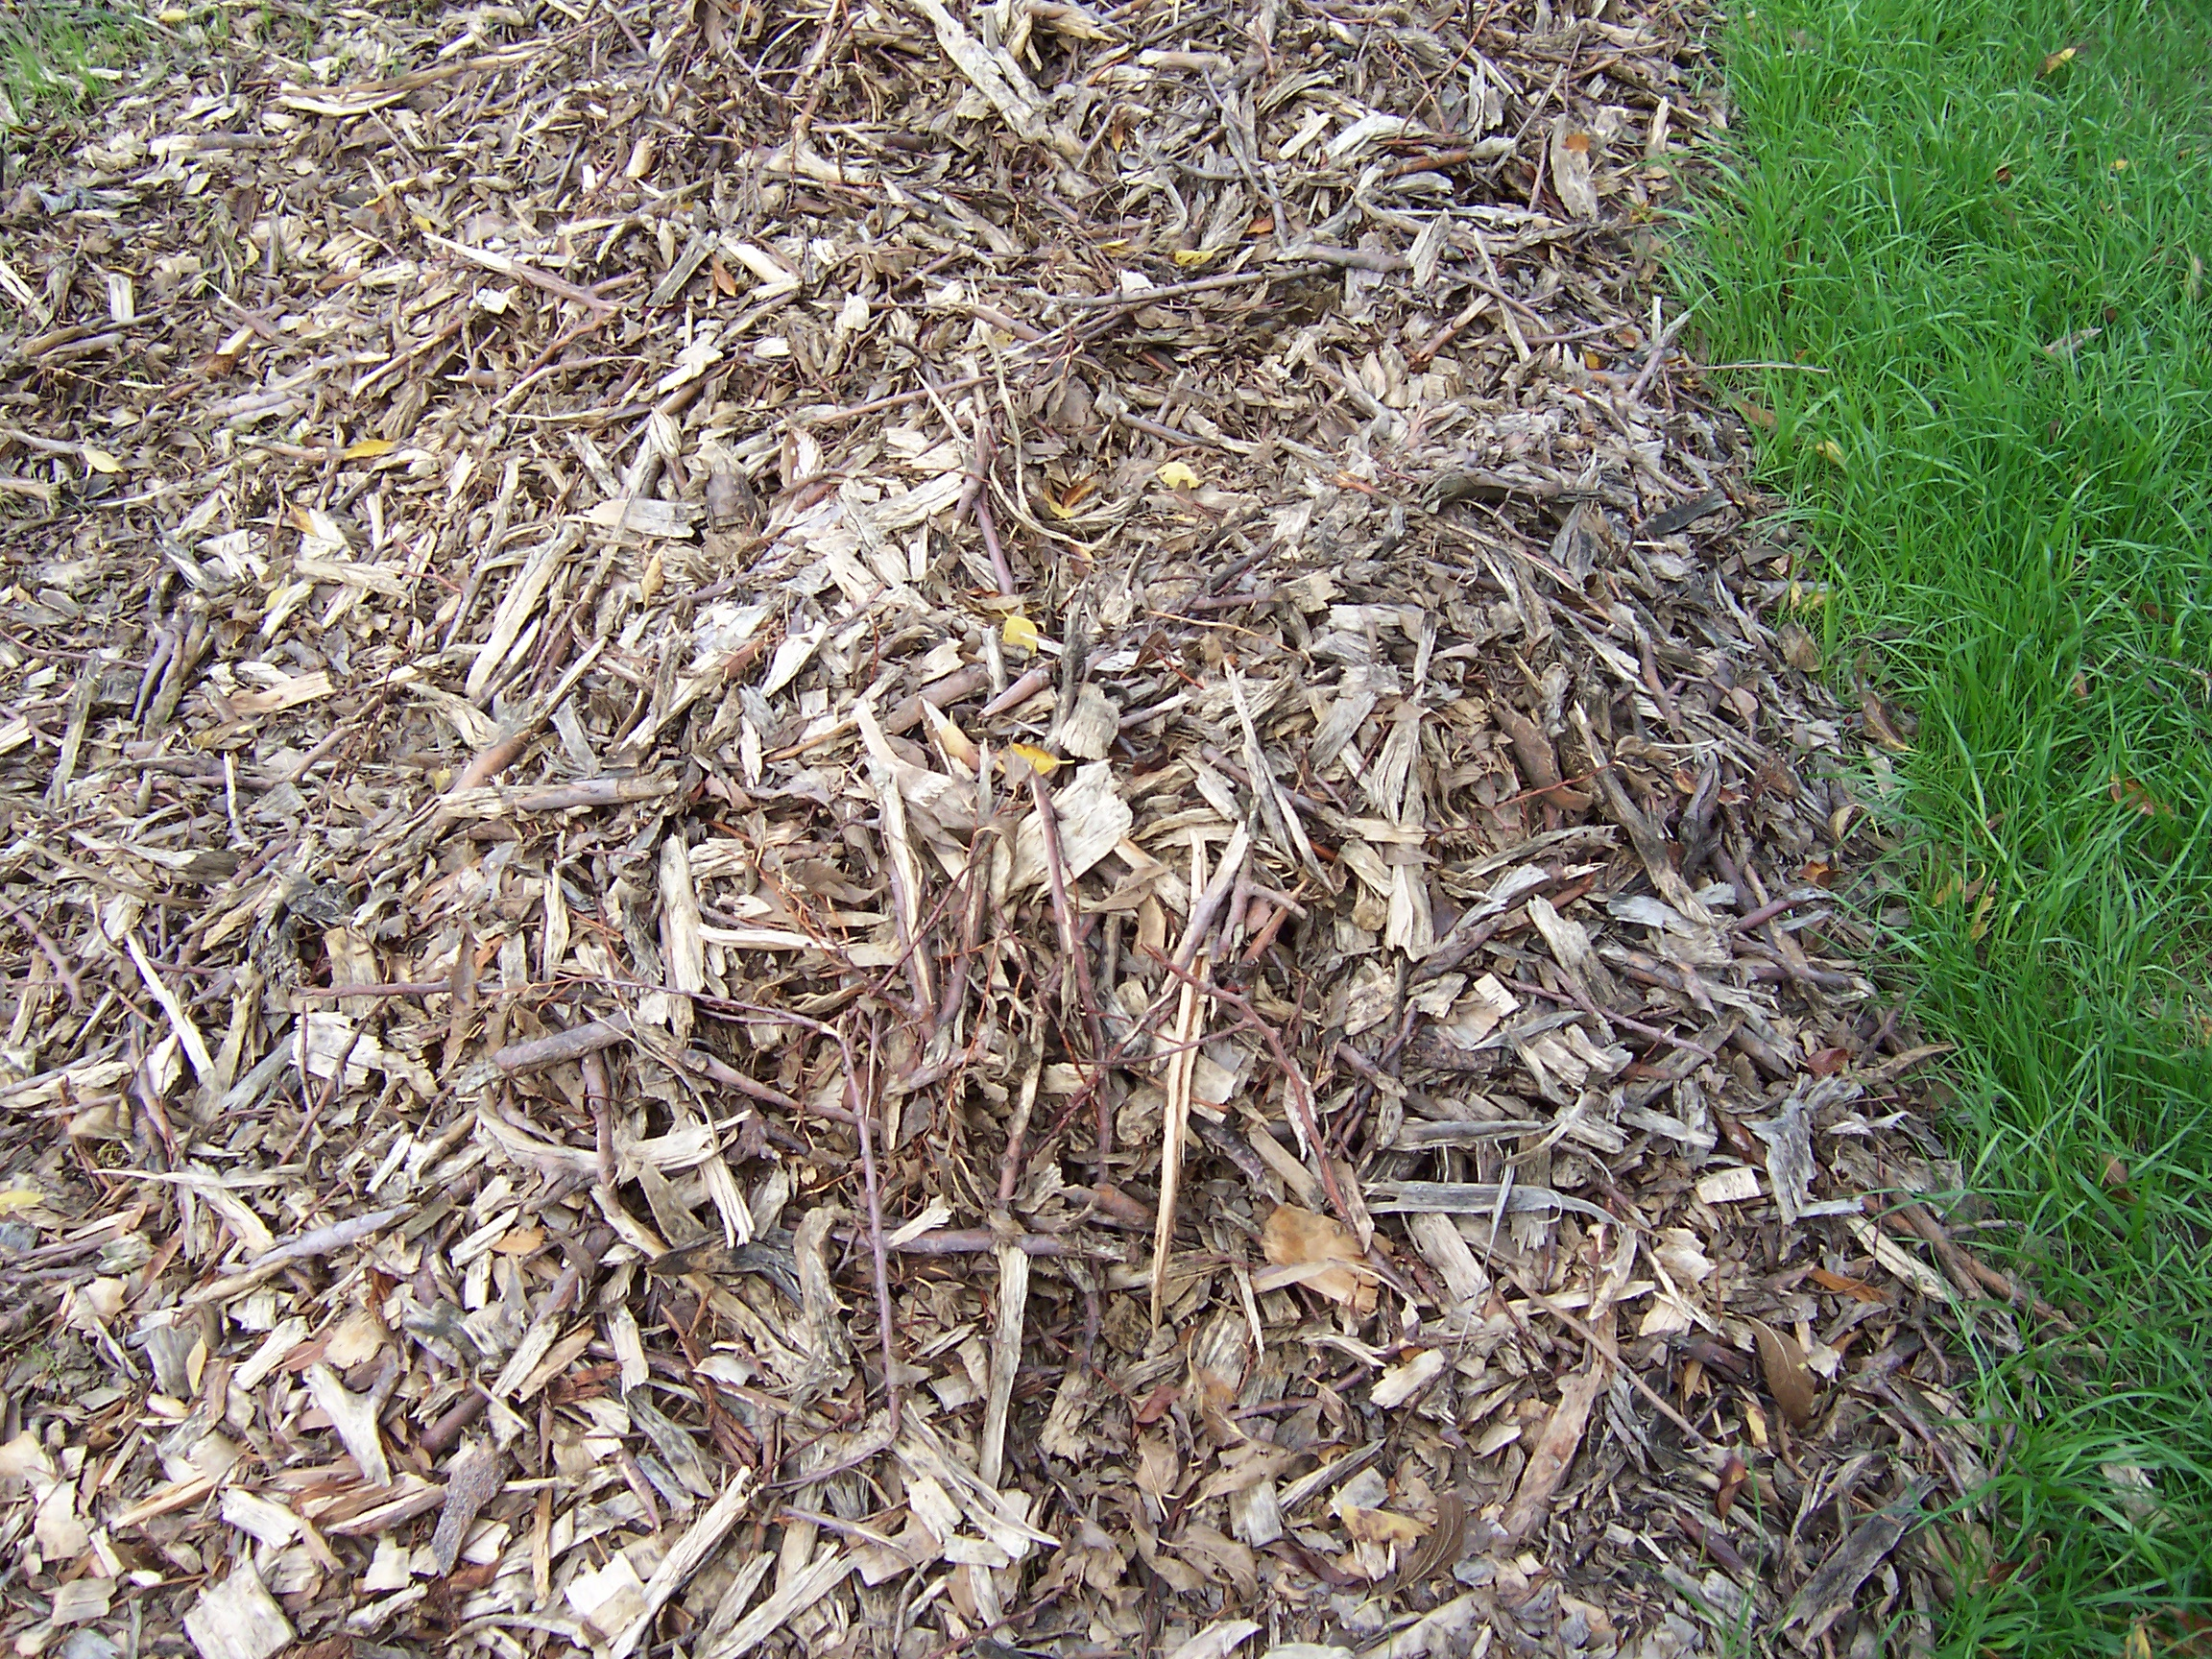 Landscaping With Wood Mulch : Wood chip mulch i grow vegetables